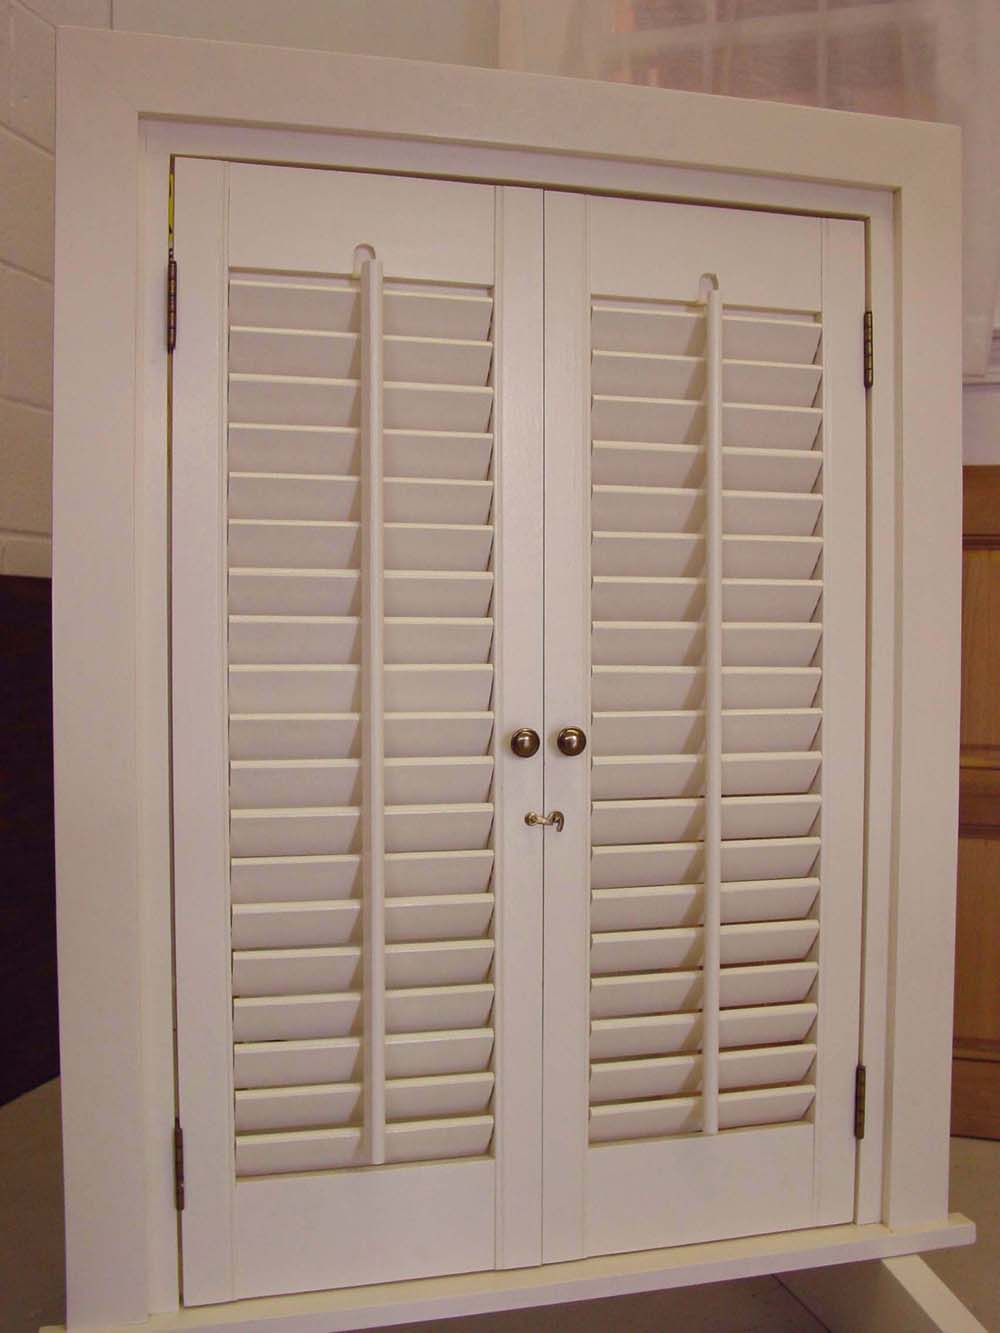 Shuttercraft interior shutters for Window shutters